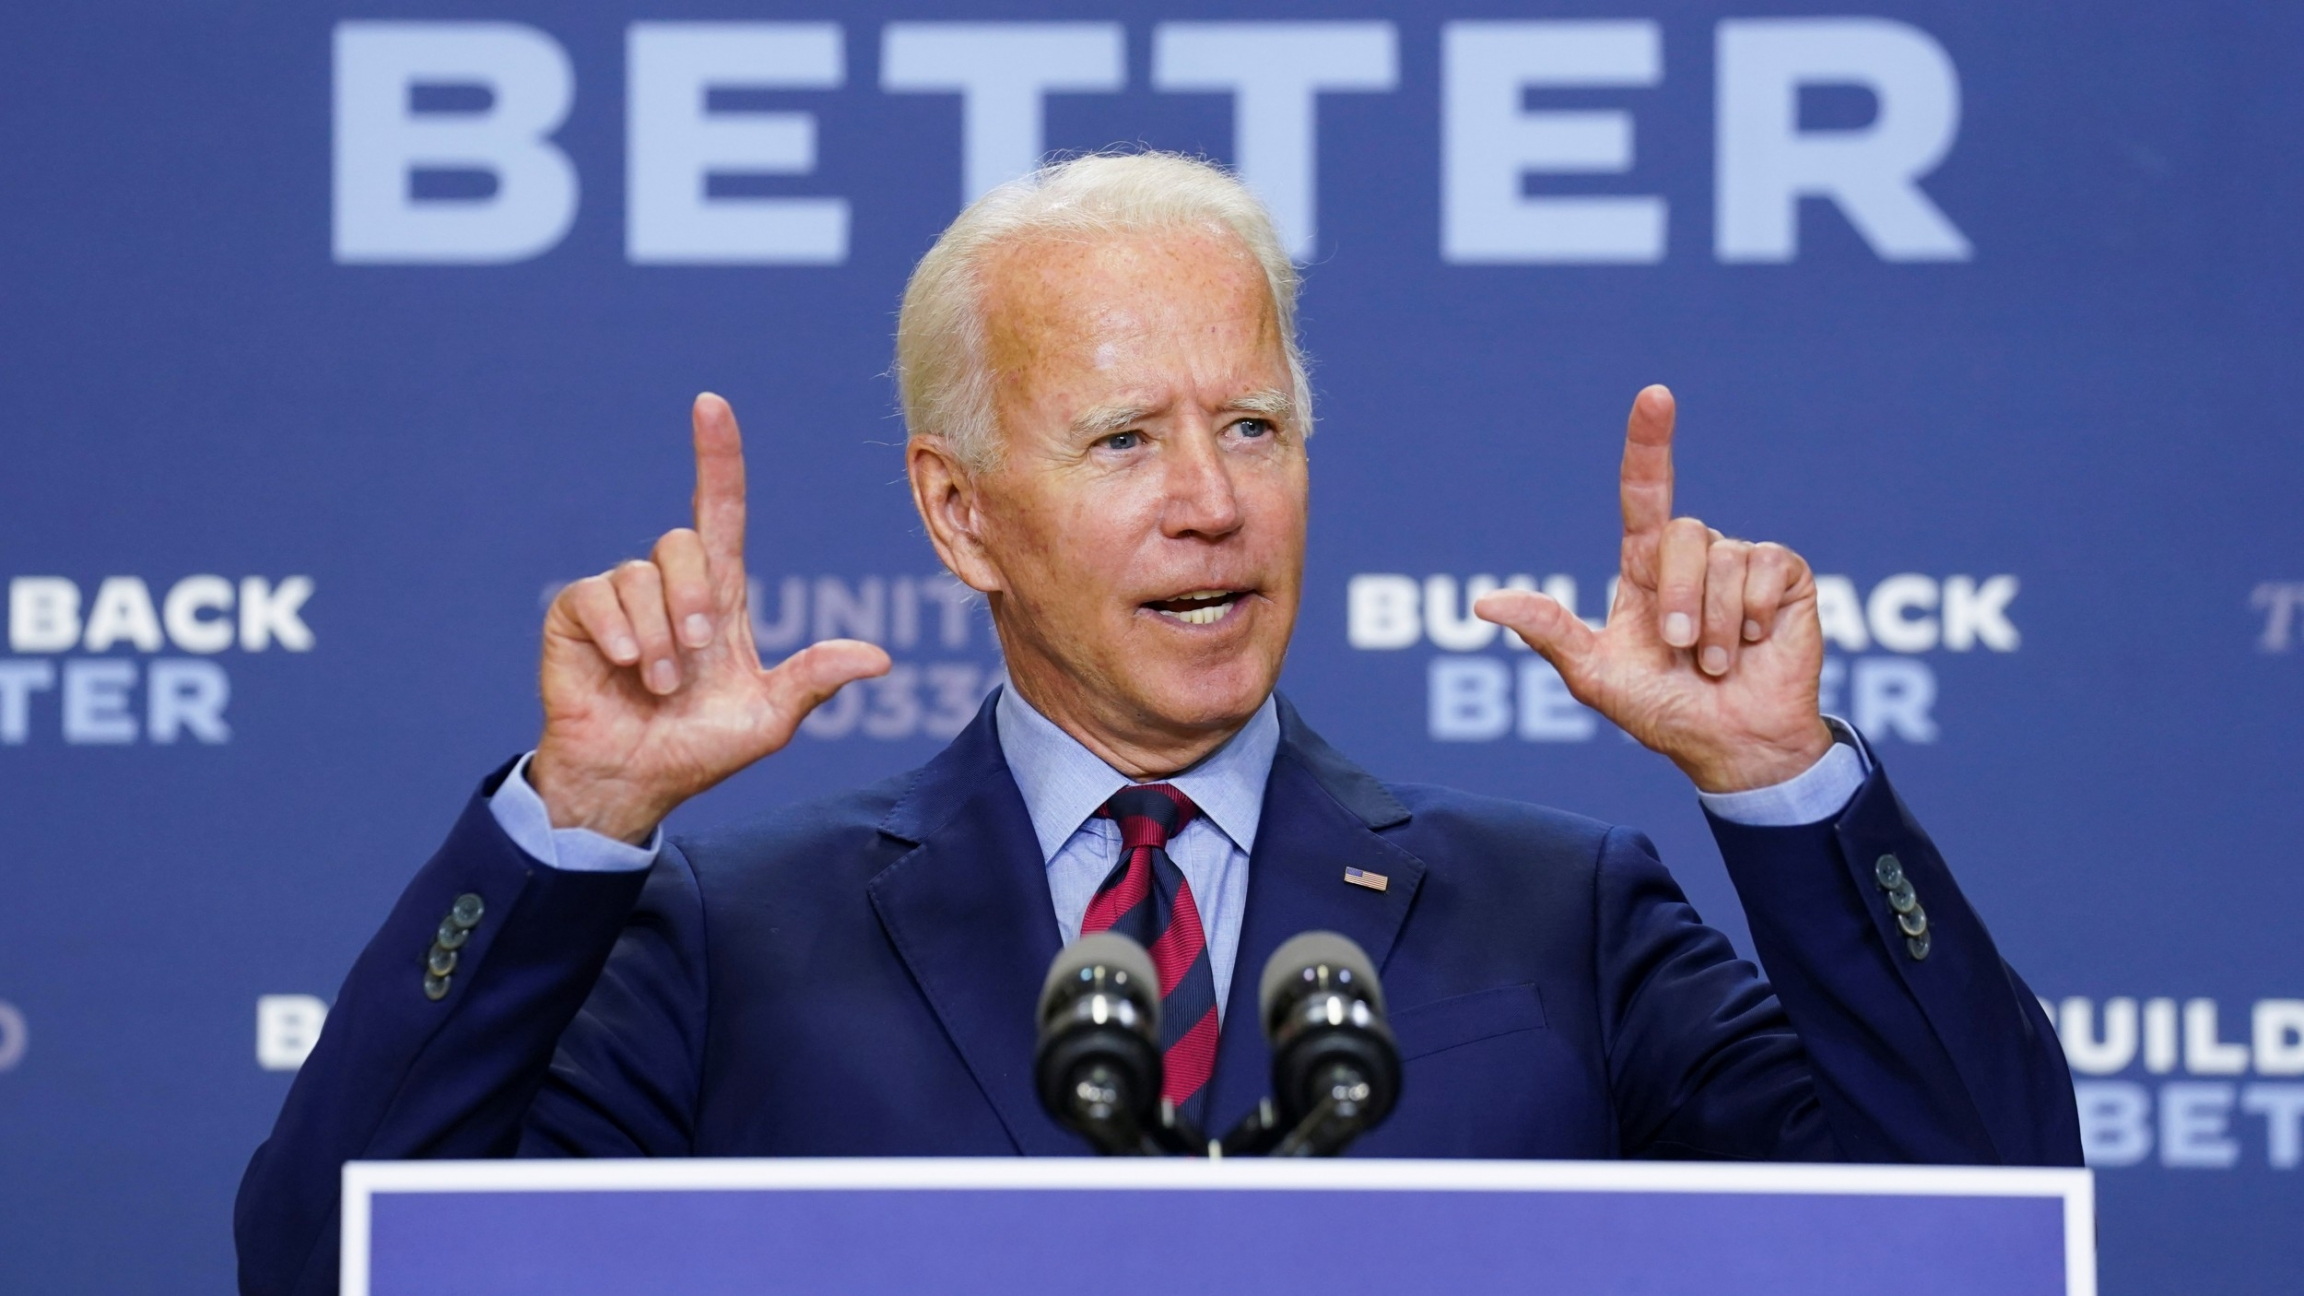 Democratic US presidential nominee and former Vice President Joe Biden answers questions from reporters after a speech about the effects on the economy of the Trump administration's response to the coronavirus during an appearance in Wilmington, Del., Sep